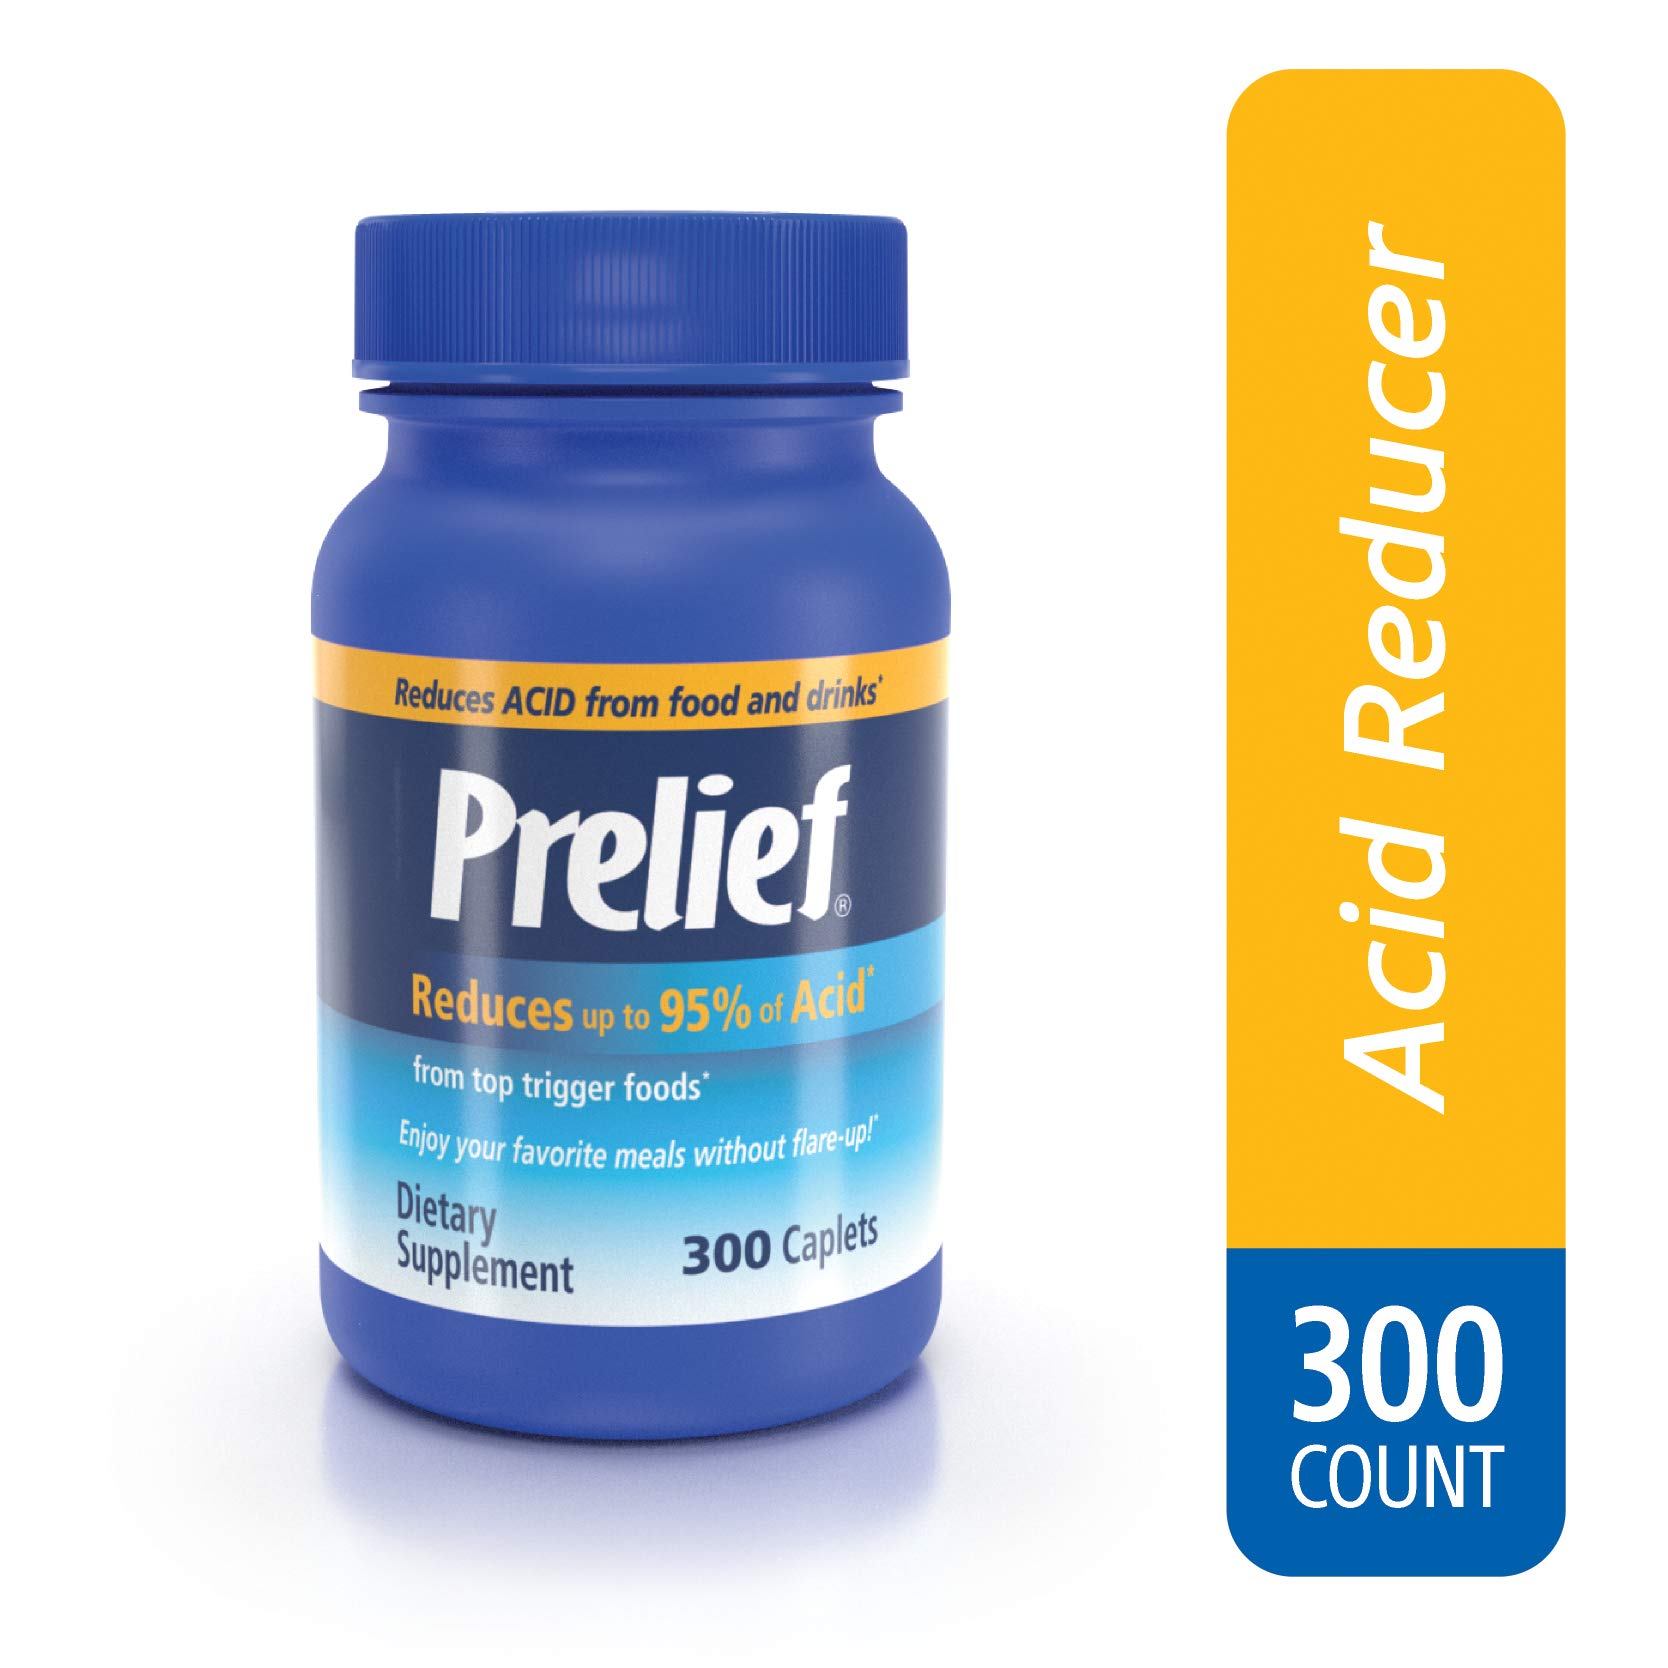 Prelief Acid Reducer Dietary Supplement Caplets, 300 Count by PRELIEF